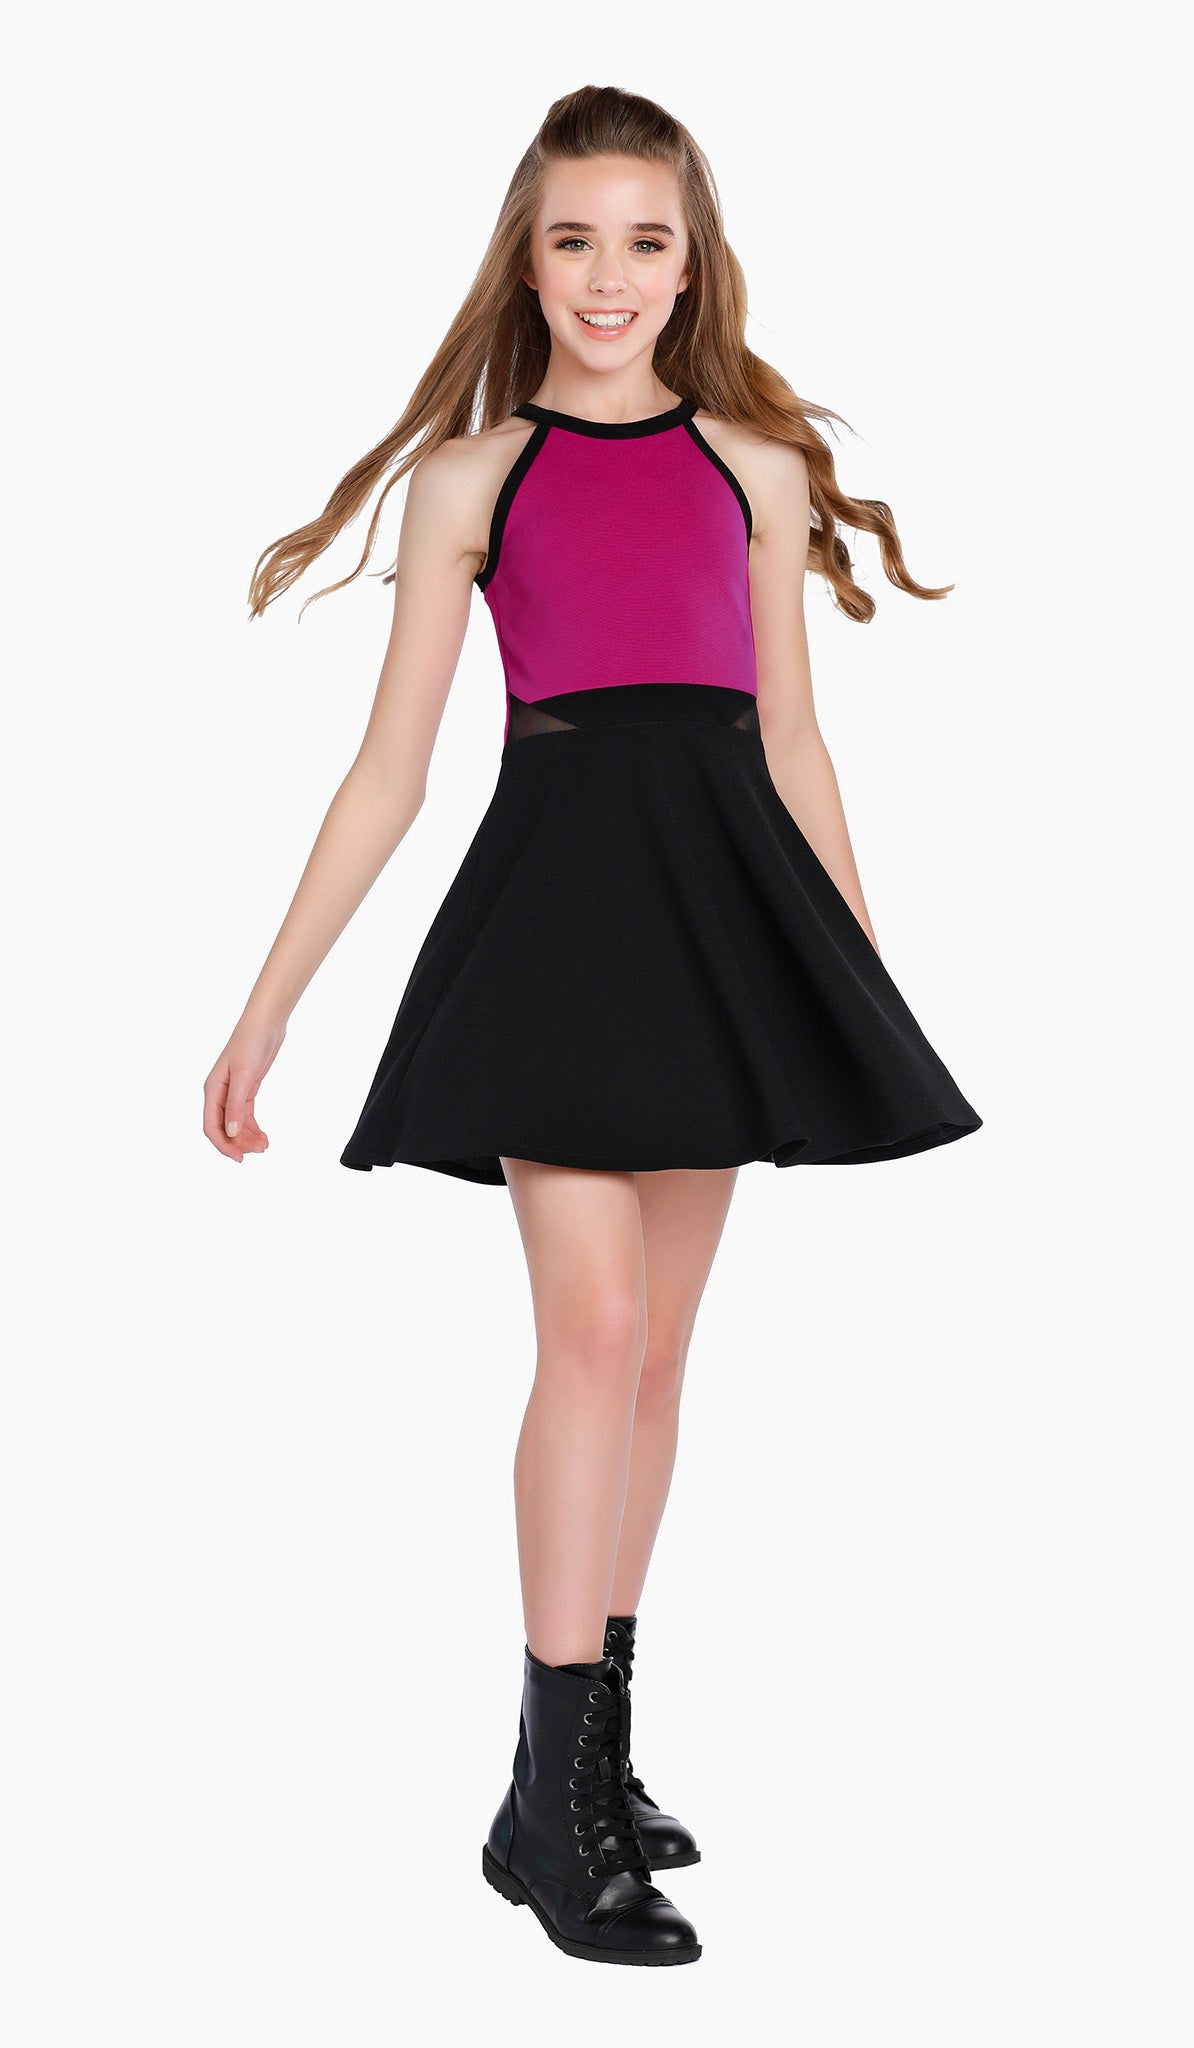 THE ELLI DRESS - Sallymiller.com - [variant title] - | Event & Party Dresses for Tween Girls & Juniors | Weddings Dresses, Bat Mitzvah Dresses, Sweet Sixteen Dresses, Graduation Dresses, Birthday Party Dresses, Bar Mitzvah Dresses, Cotillion Dresses